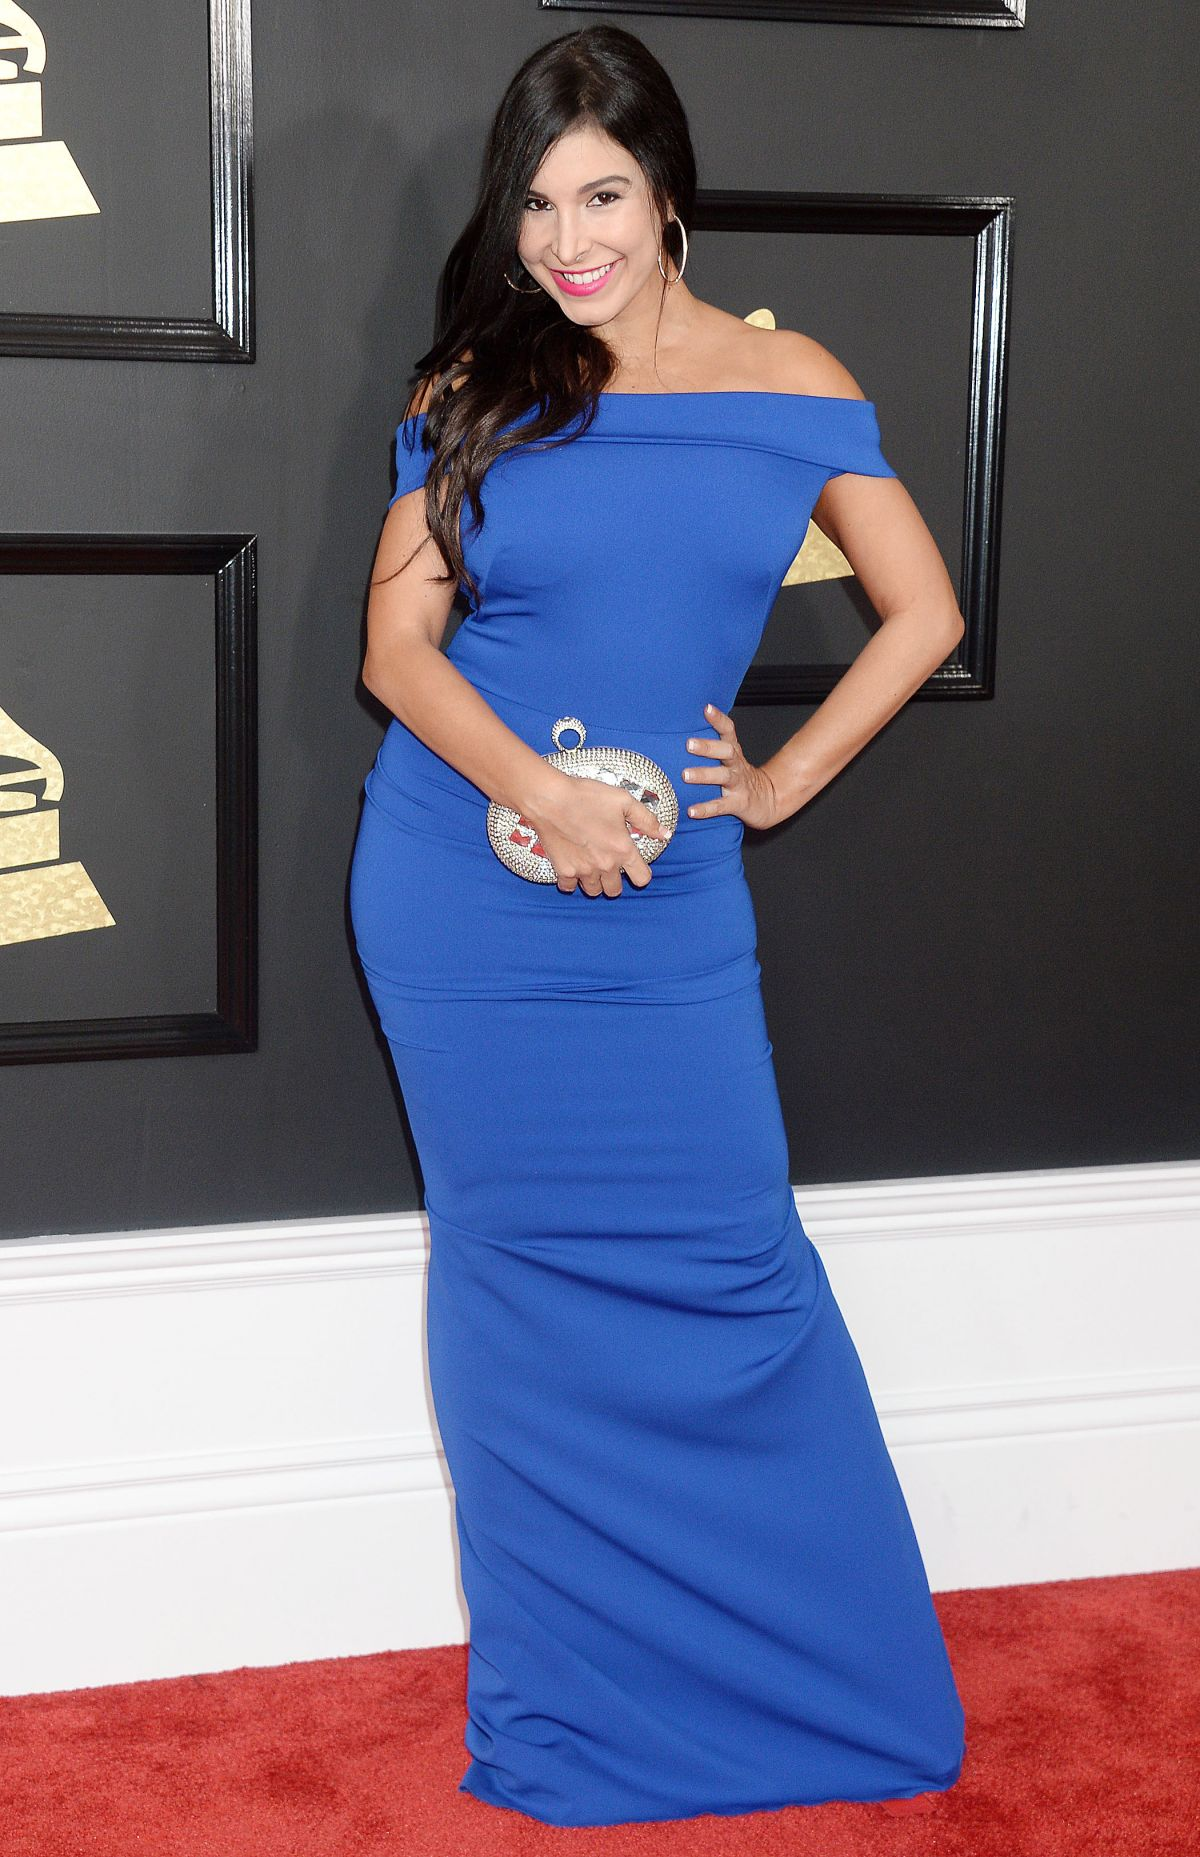 MAYRA VERONICA at 59th Annual Grammy Awards in Los Angeles 02/12/2017